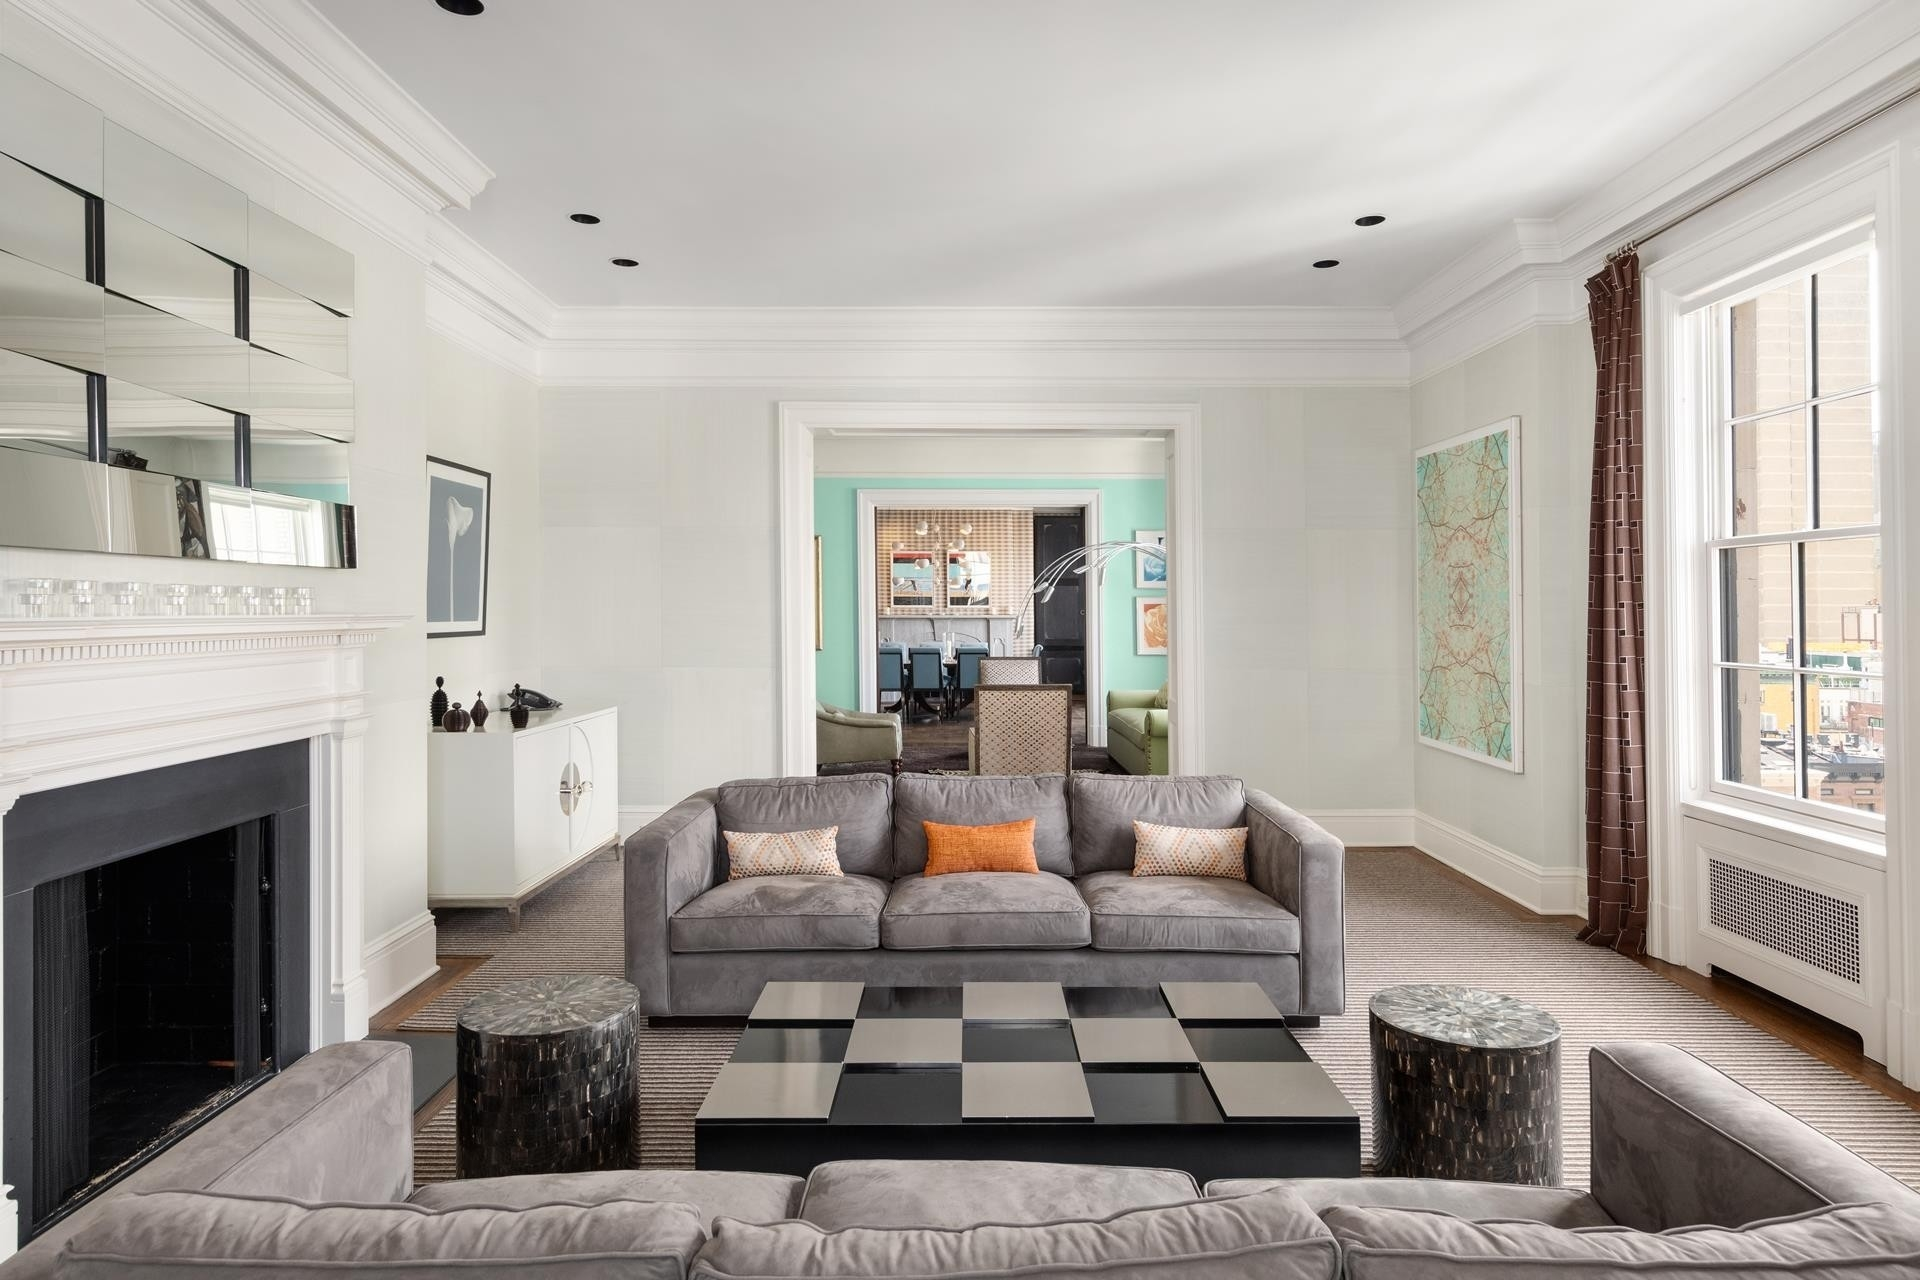 Property en The Verona, 32 E 64TH ST , 9W Upper East Side, New York, NY 10021